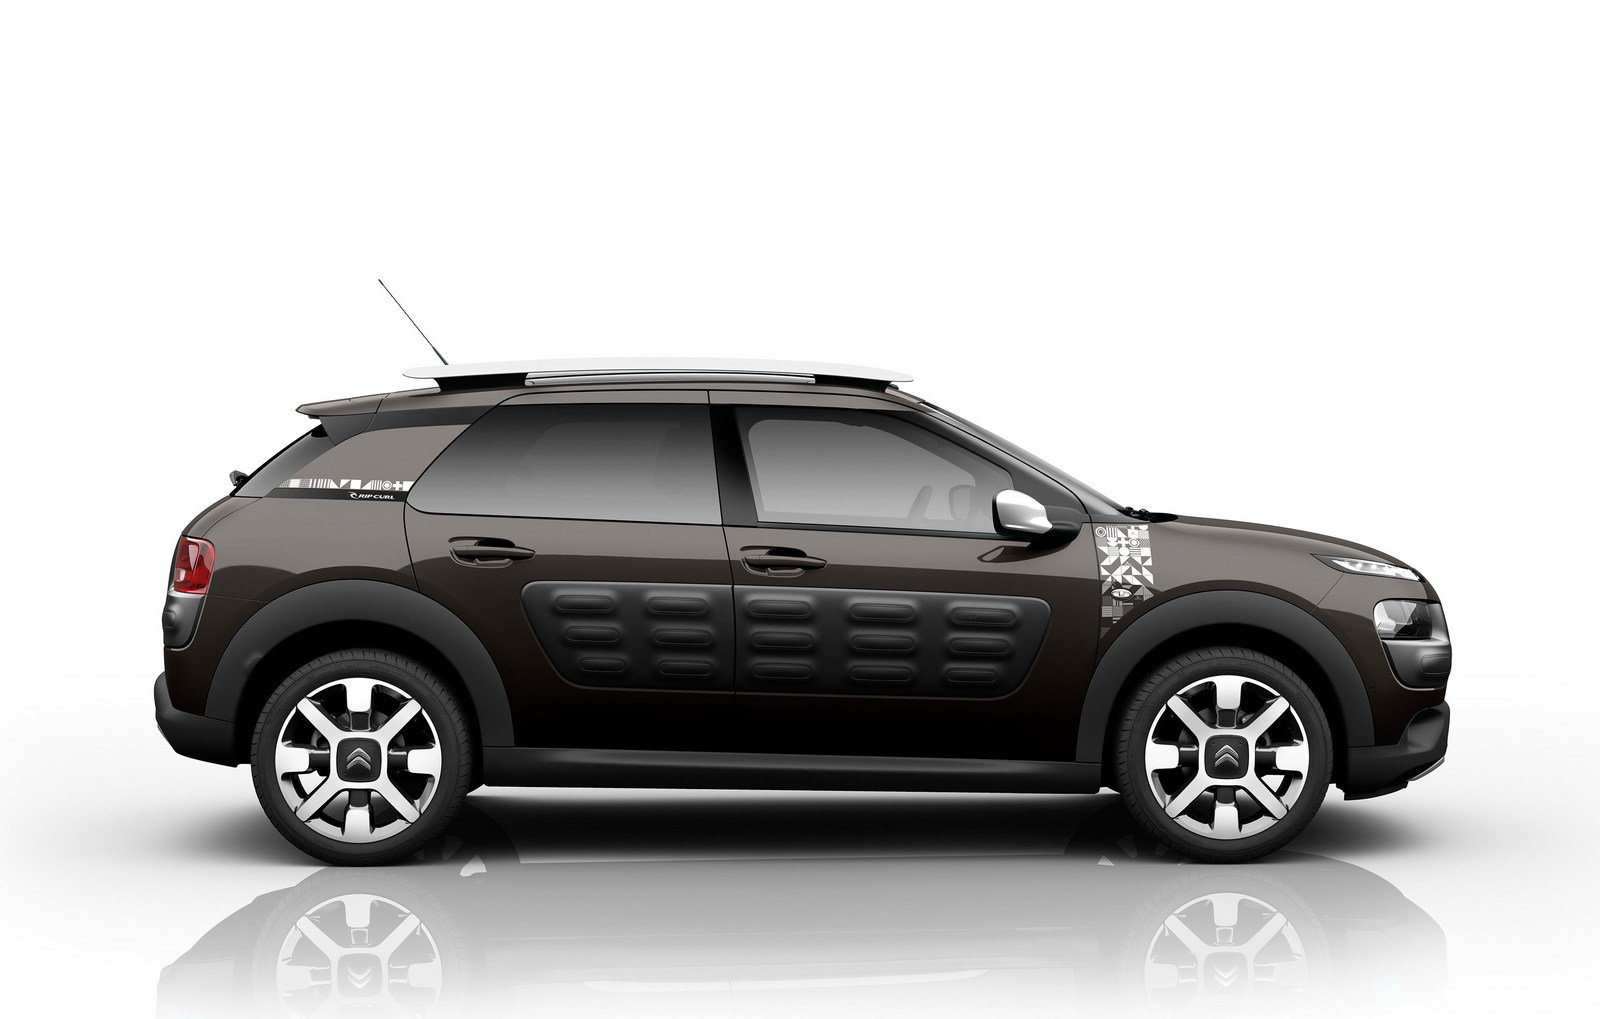 2016 citro n c4 cactus rip curl special edition picture 667248 car review top speed. Black Bedroom Furniture Sets. Home Design Ideas